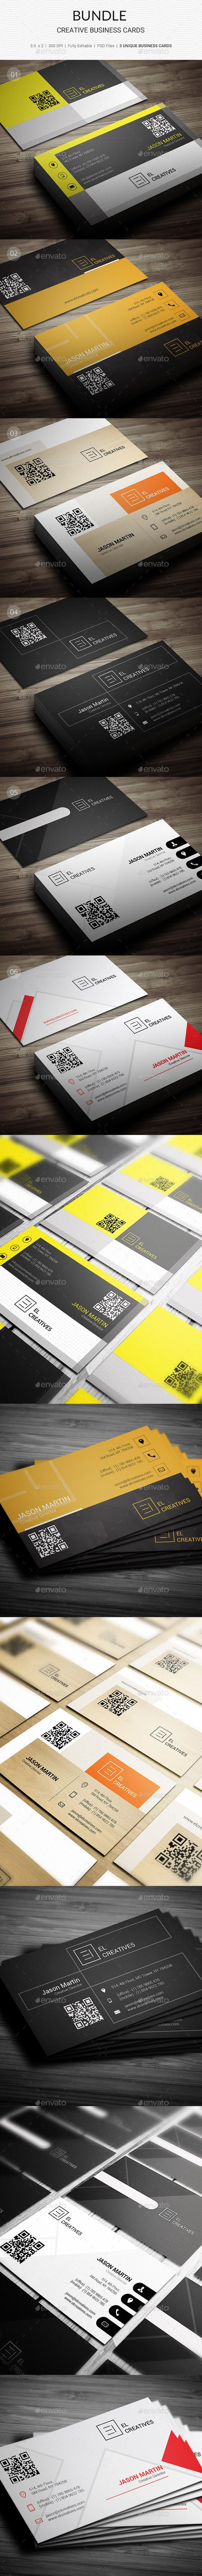 Bundle 6 in 1 - Creative Business Card Template #design Download: http://graphicriver.net/item/bundle-6-in-1-creative-business-card-150/12738363?ref=ksioks